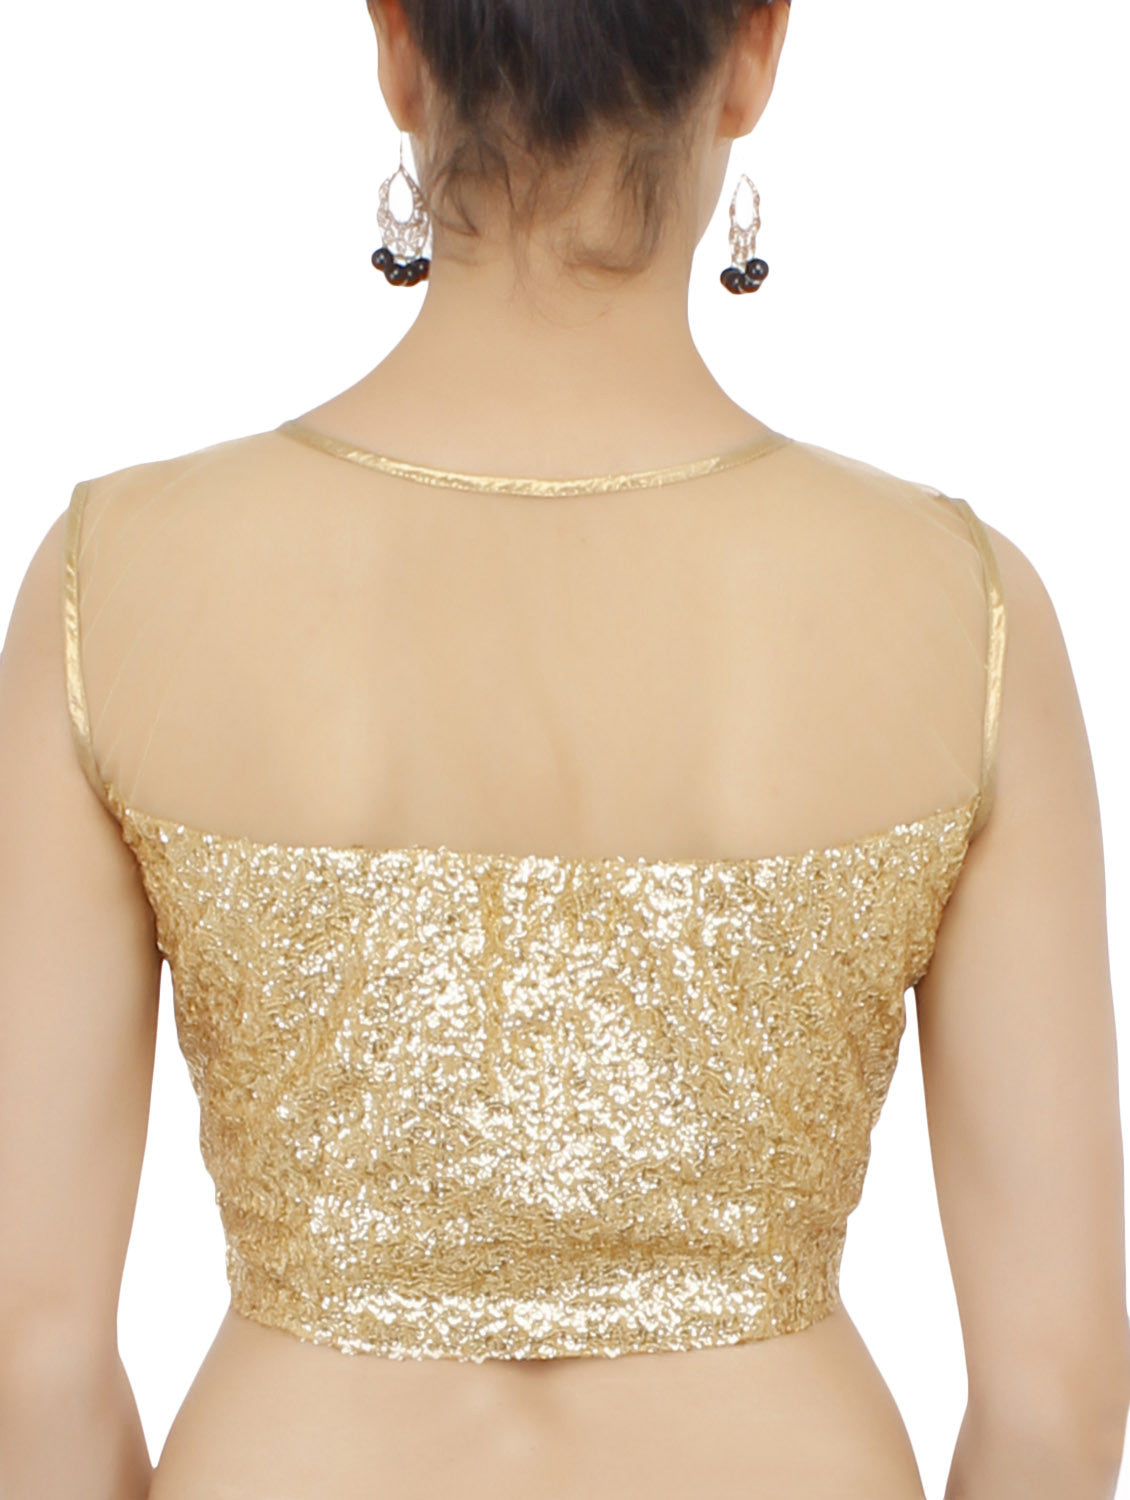 JKK Mart Golden Sequined Blouse JKKCBL80 , Saree Blouse - JKK Indian Arts, JKK Mart - 3